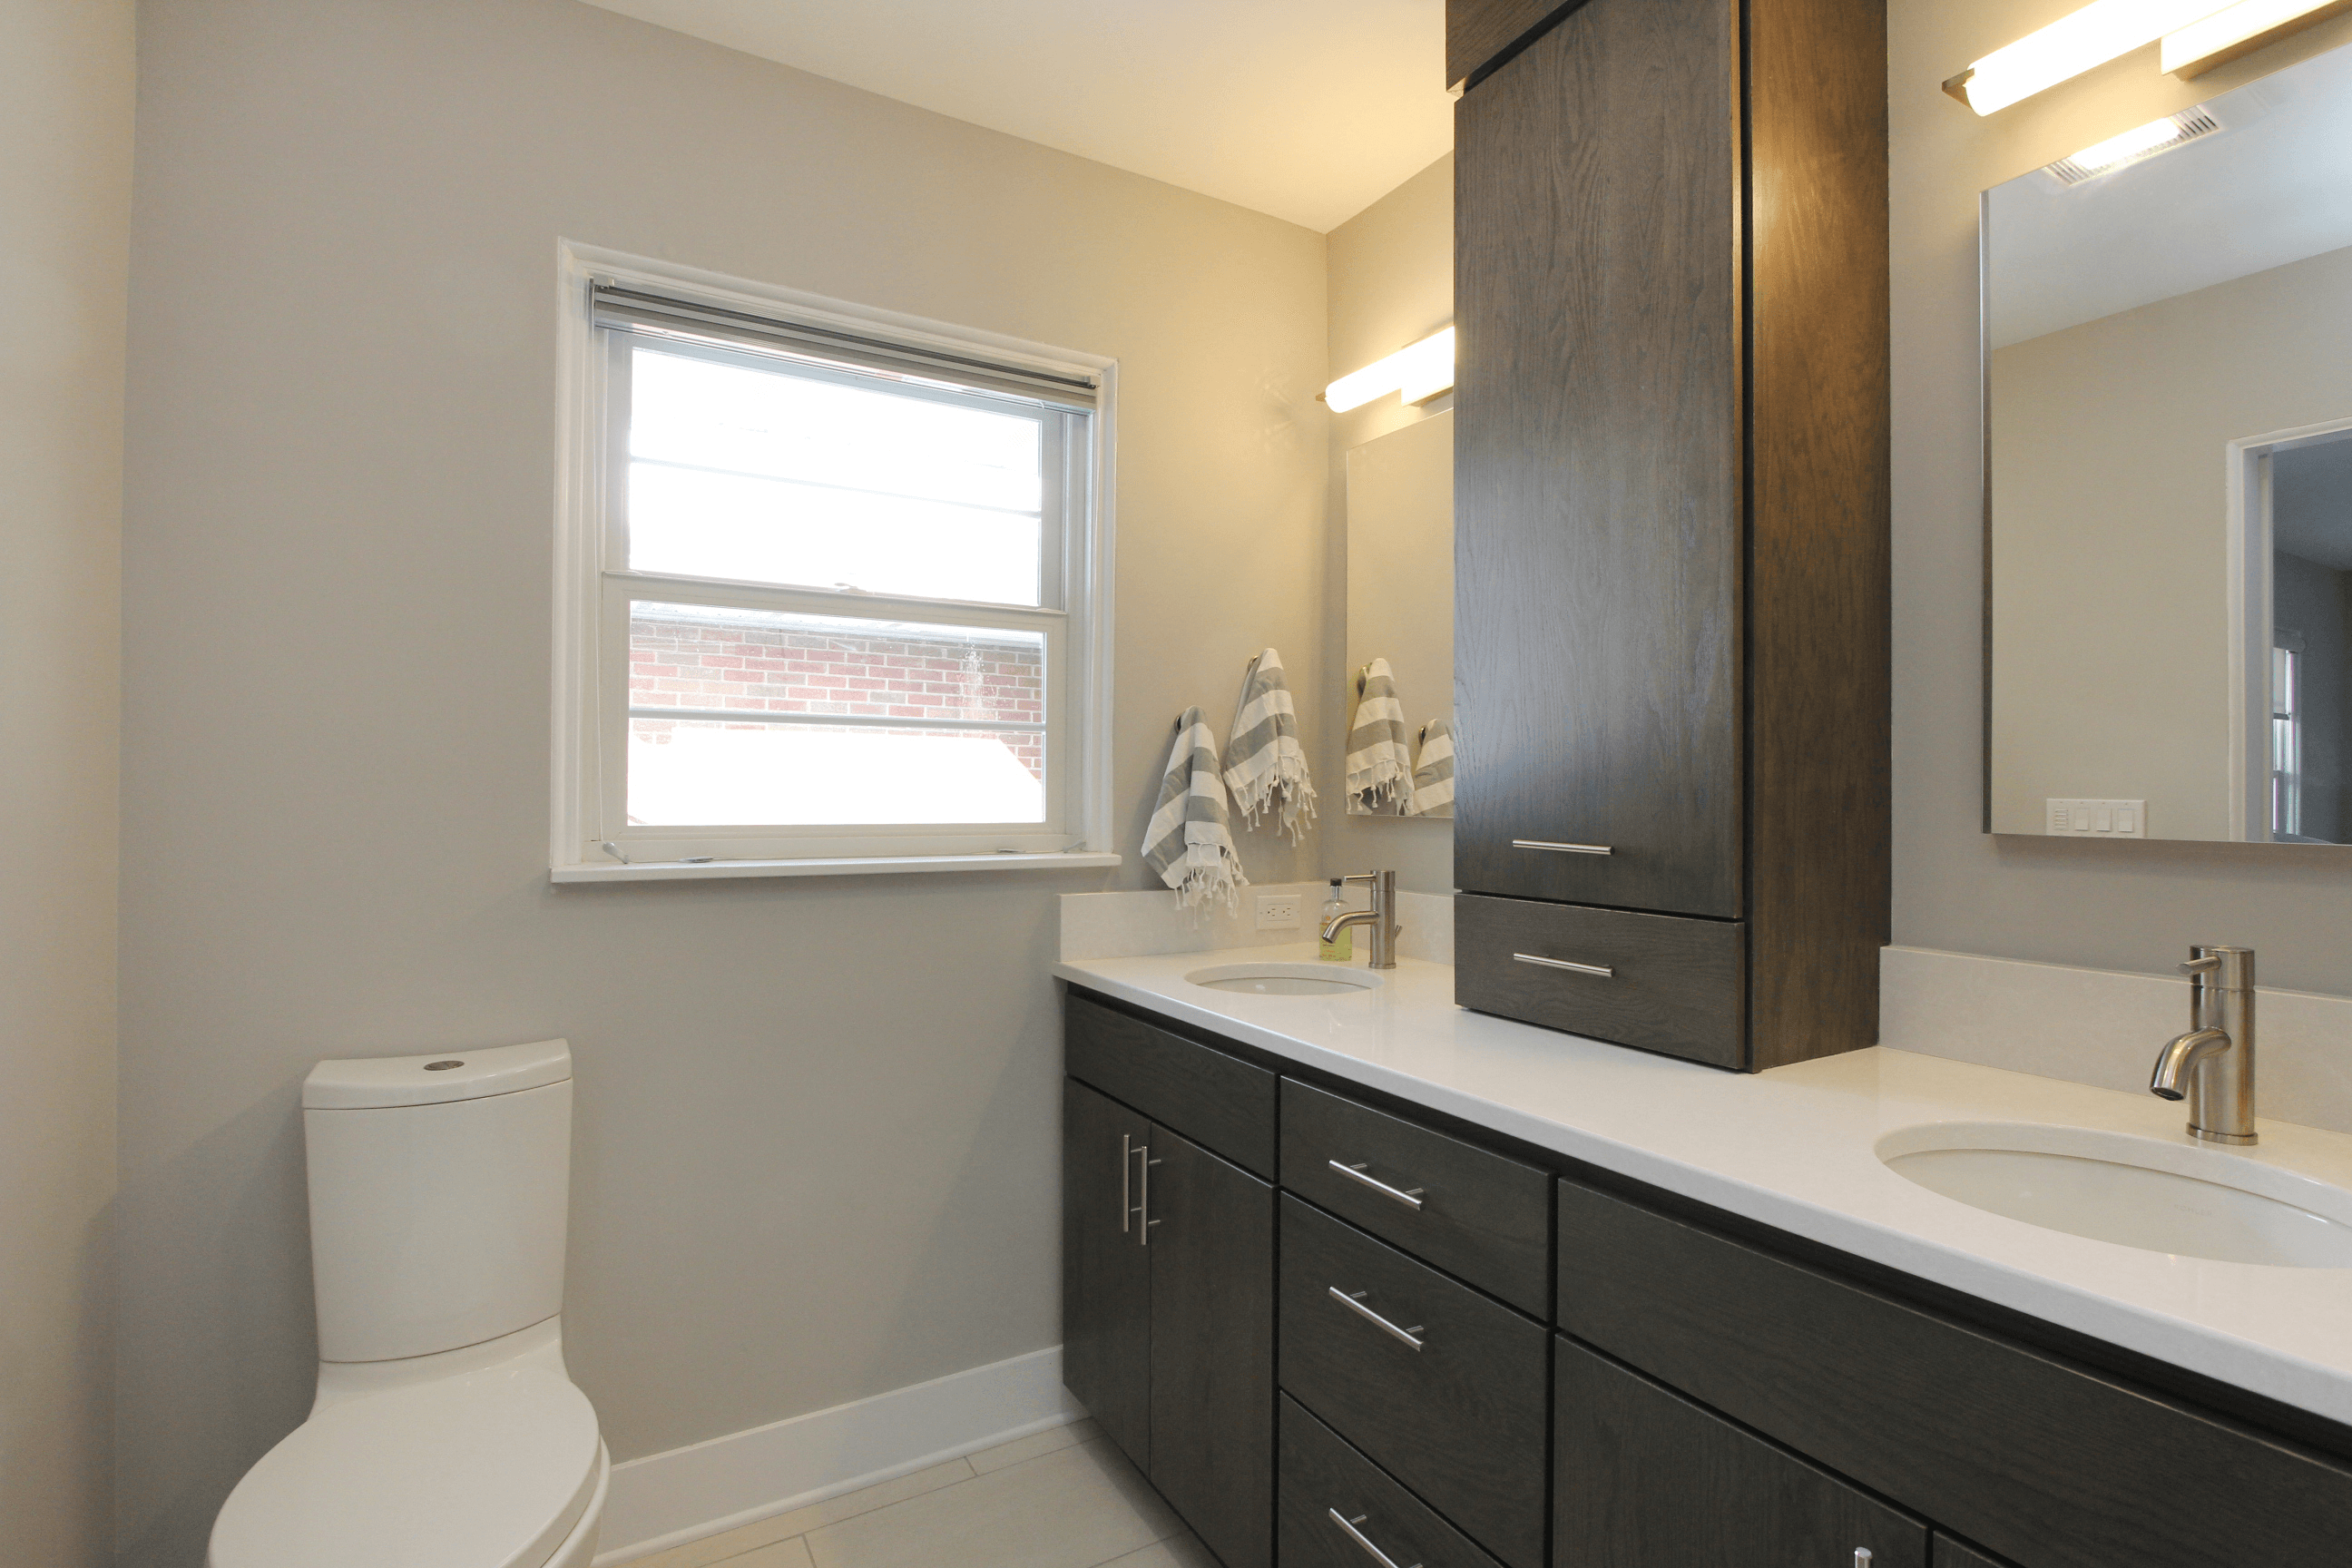 Plan Your Bathroom Remodel By Answering These Questions - How to plan a bathroom remodel